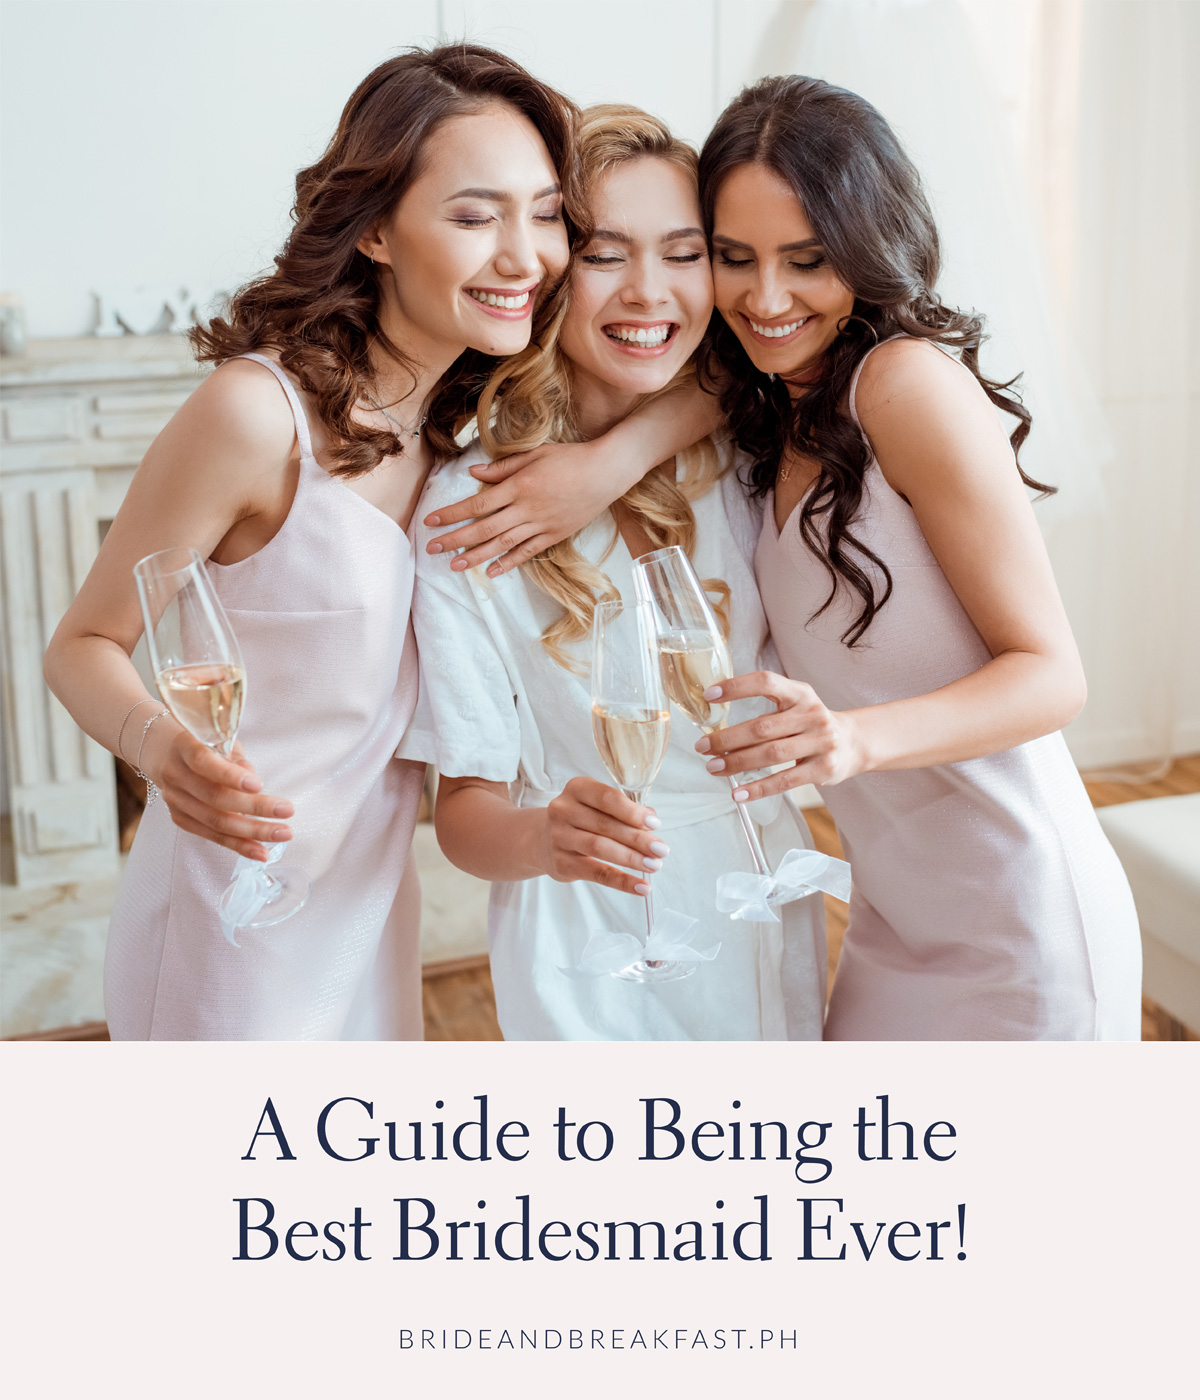 A Guide to Being the Best Bridesmaid Ever!